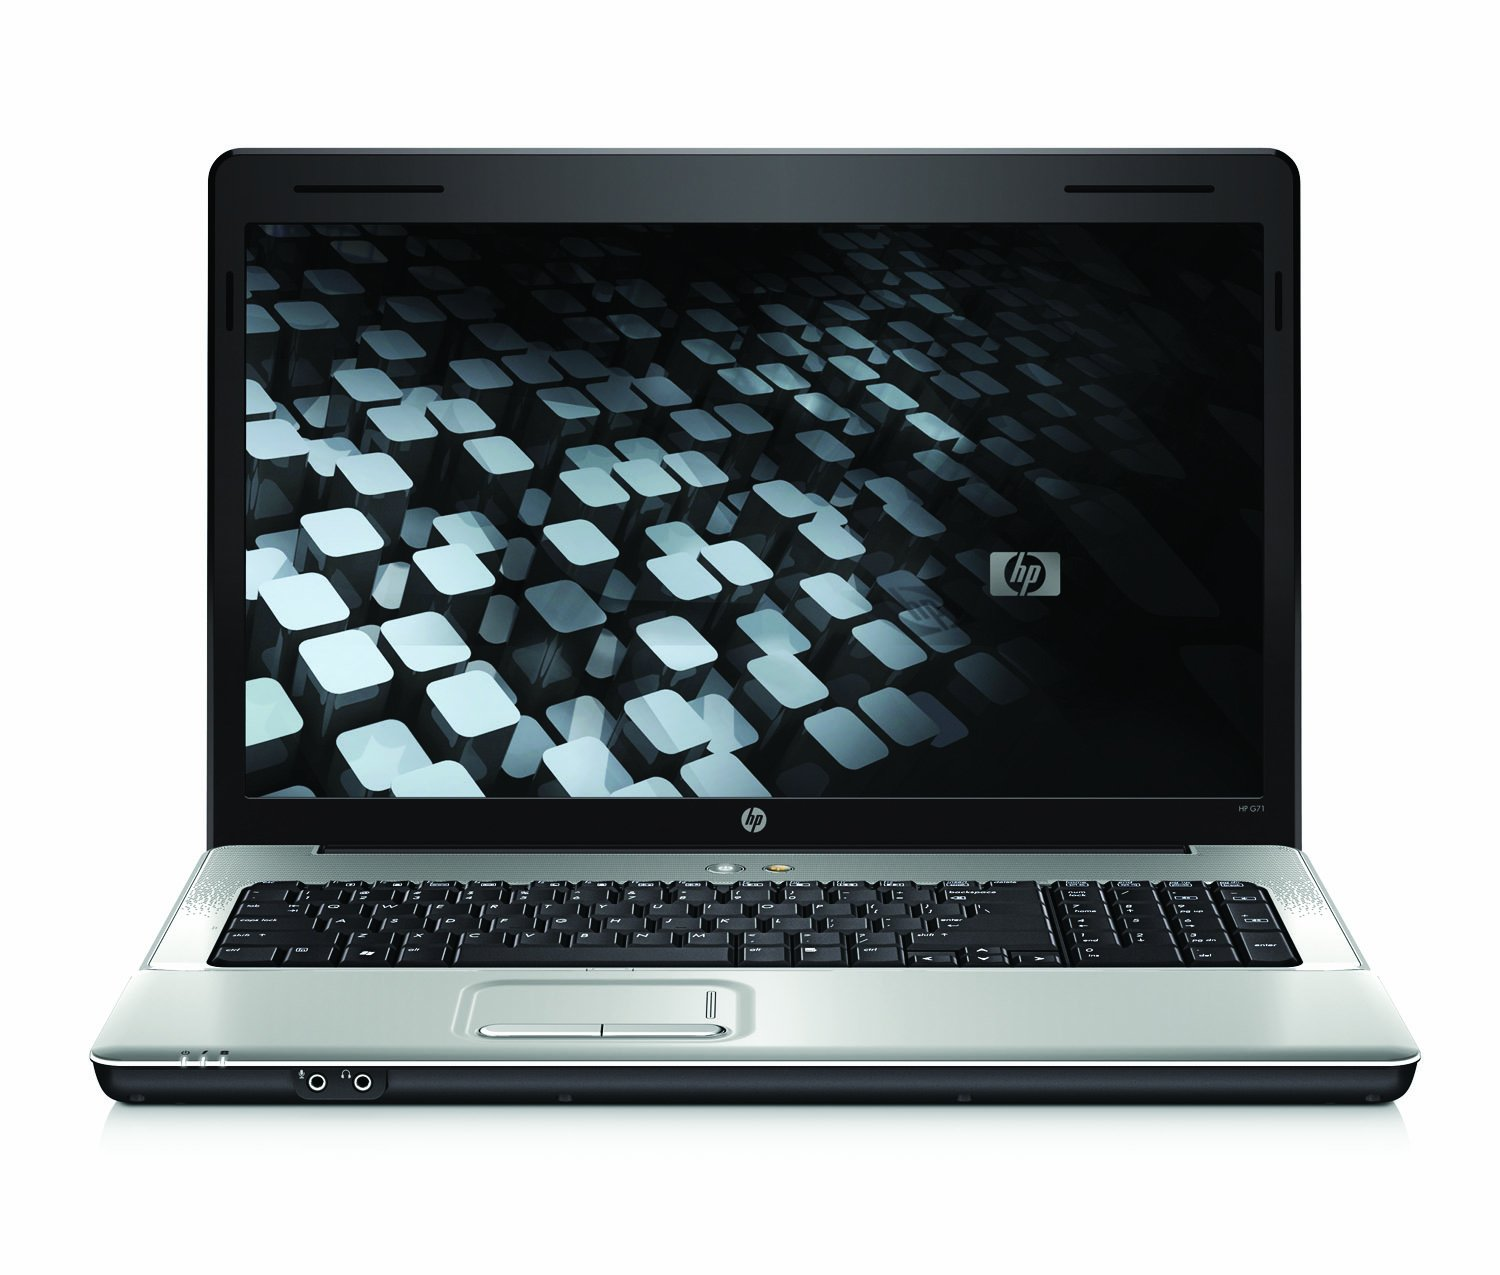 Amazon.com: HP G60-630US 15.6-Inch Laptop (Black): Computers & Accessories